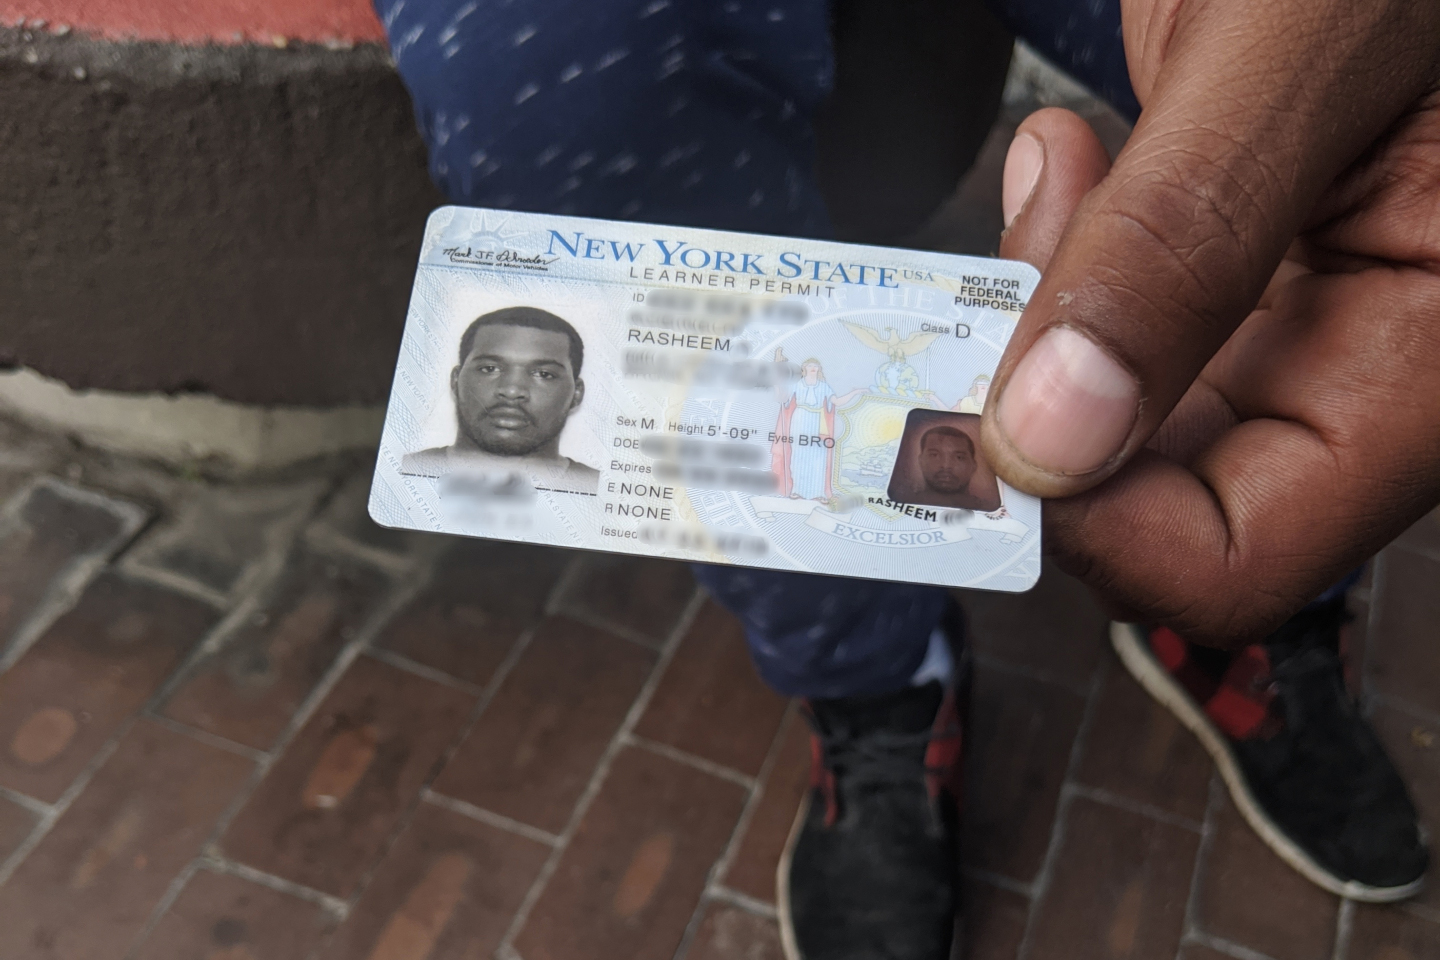 Rasheem lost access to his ID while staying on Rikers Island after a family member who was holding it passed away.